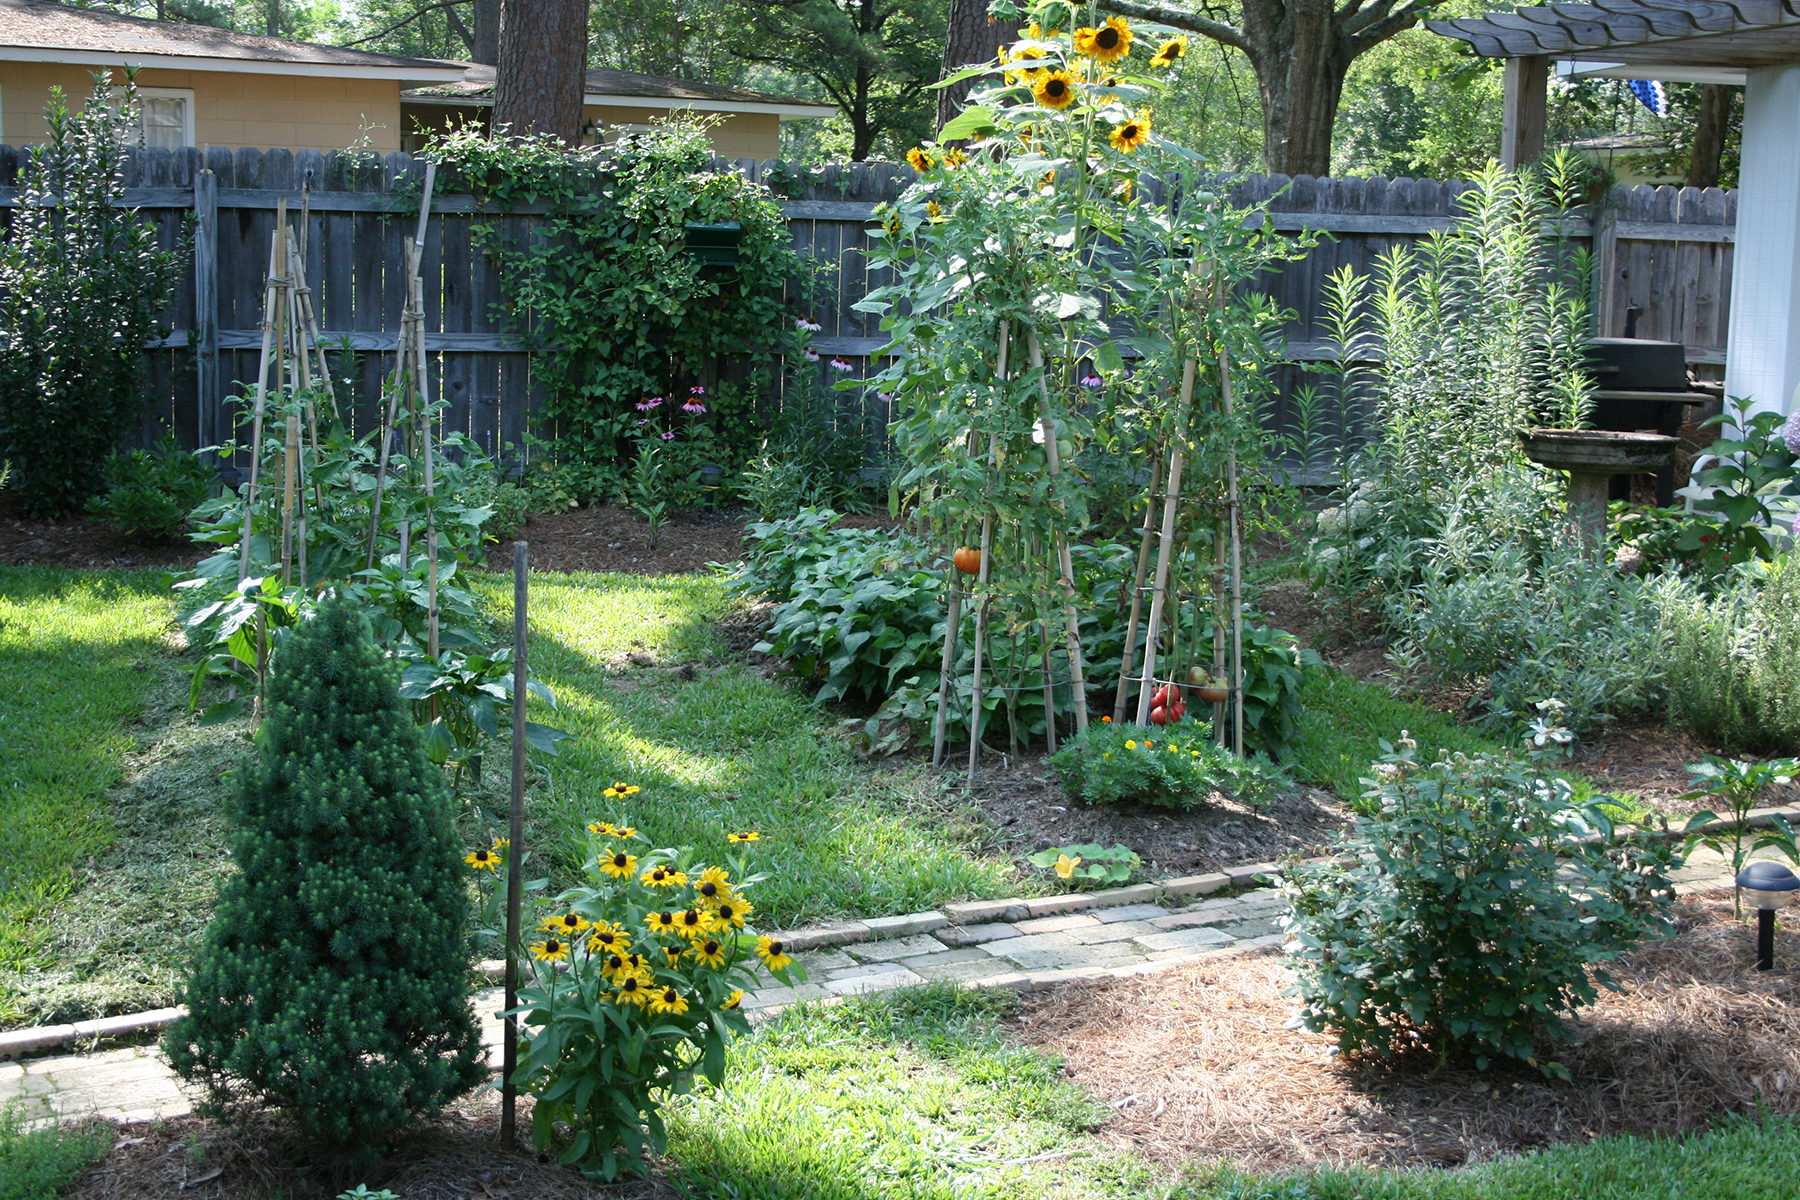 A raised bed vegetable garden with each bed simply mounded towards the middle.